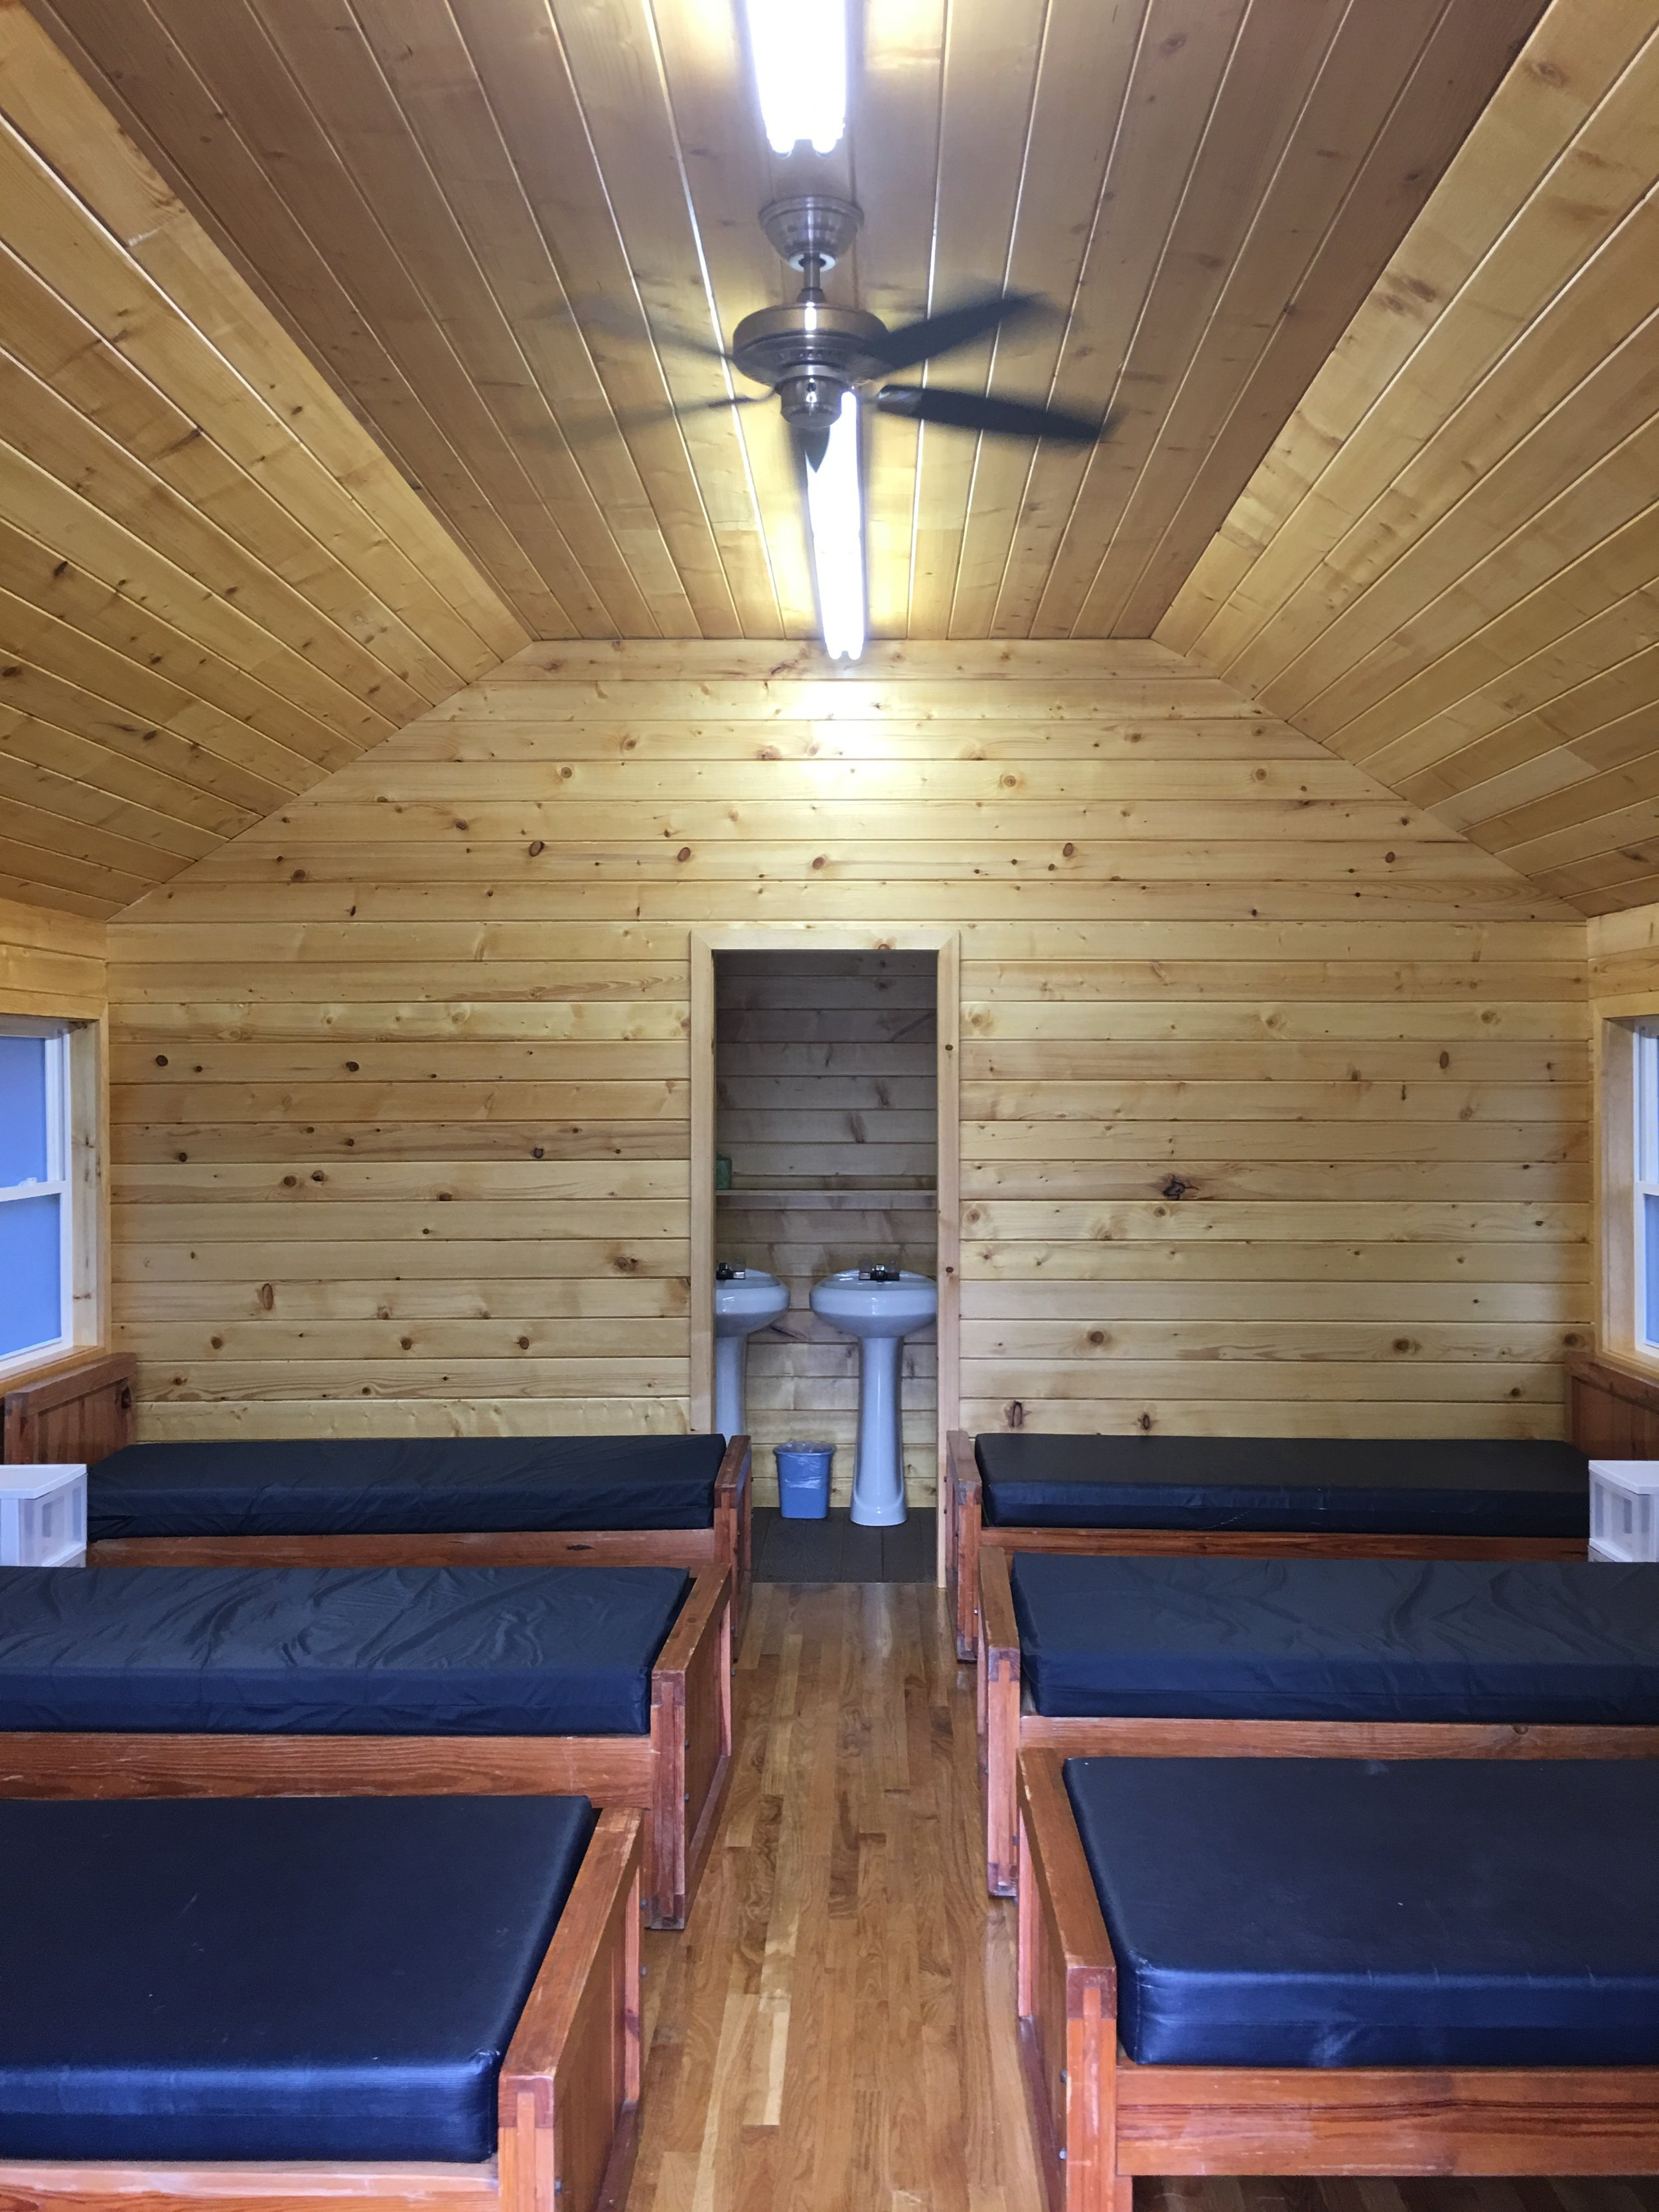 One of the renovated cabins.